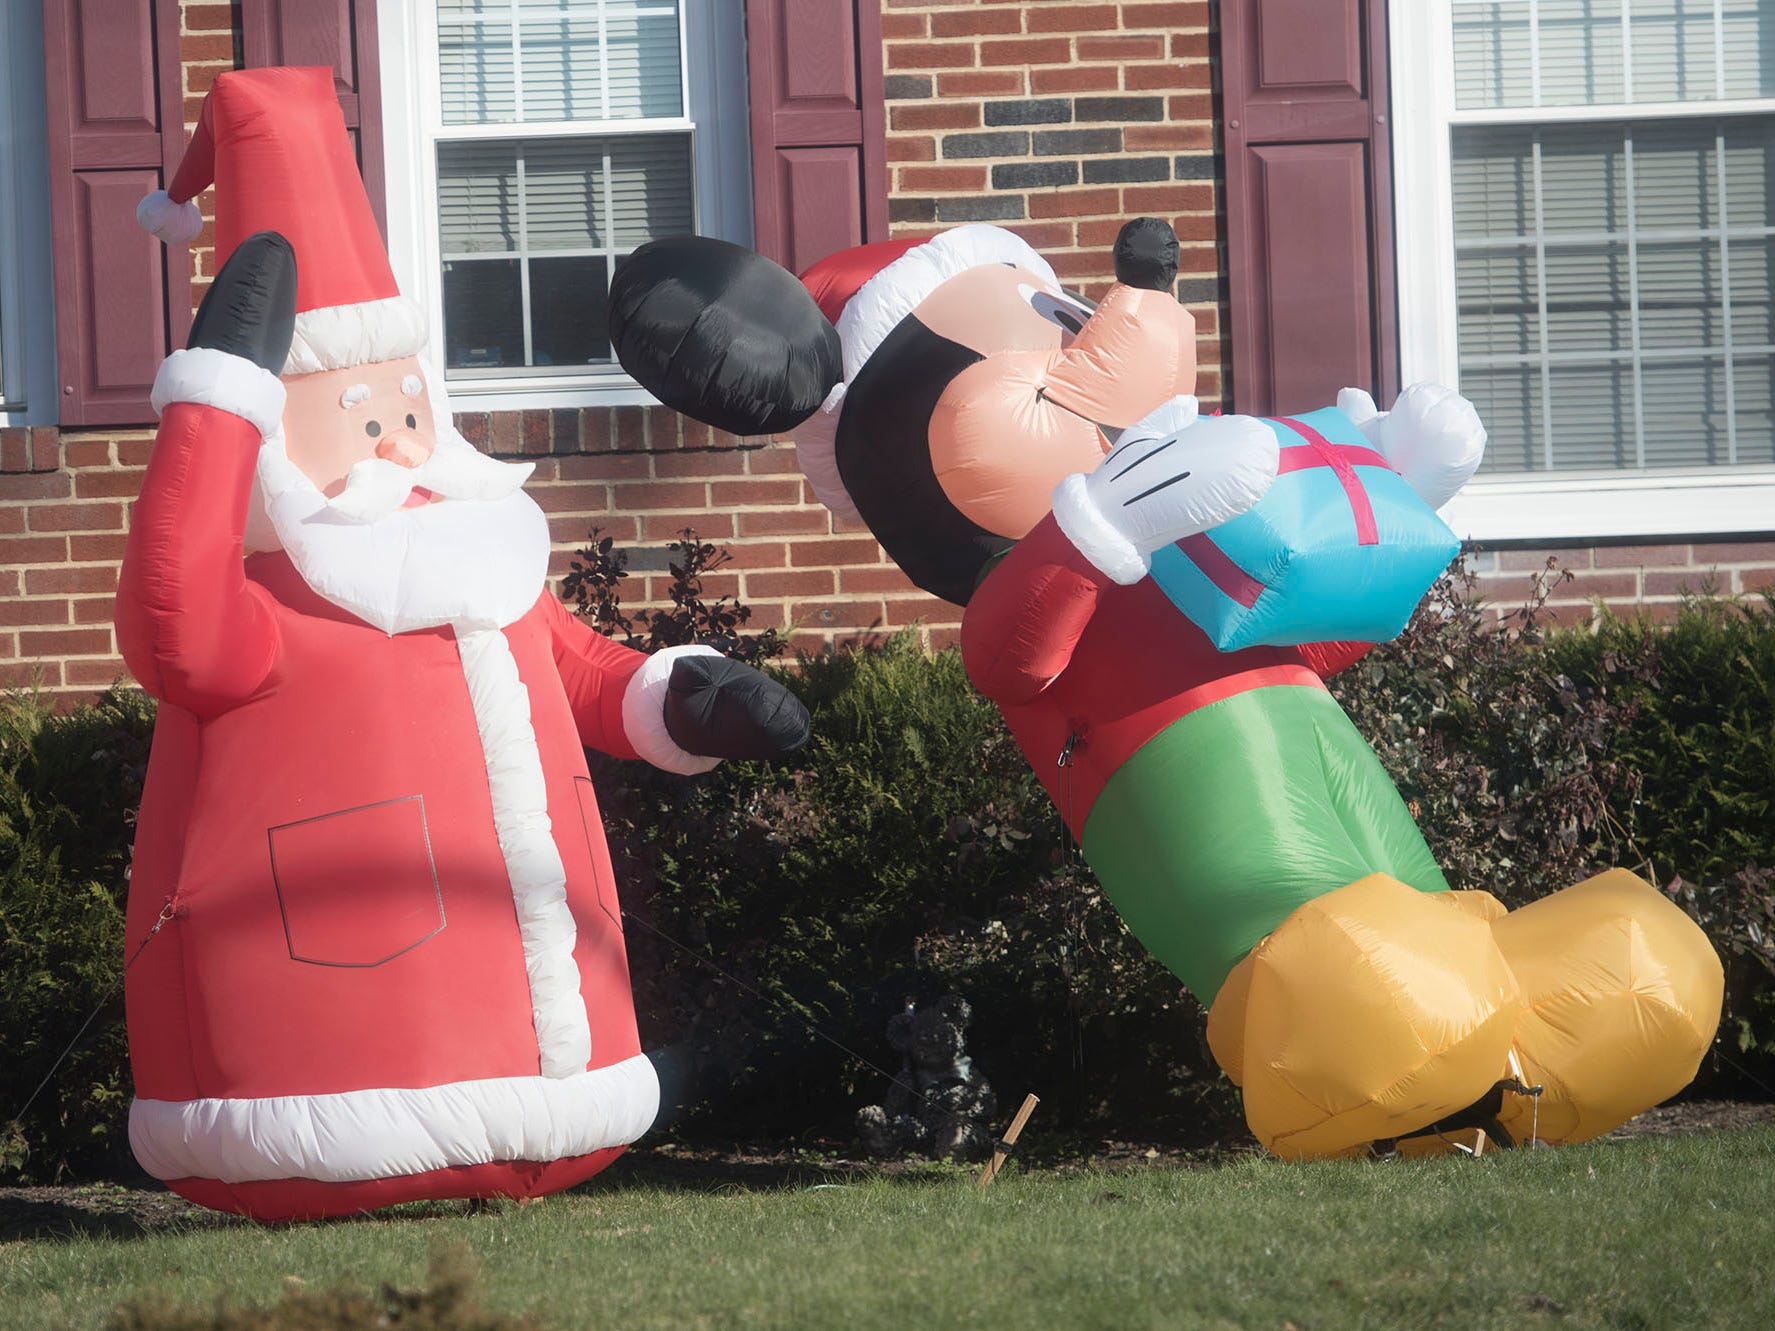 A whimsical inflated Santa and Mickey Mouse appear to greet passersby as part of a Christmas decoration along Wayne Avenue, Chambersburg. There are just about a dozen days left to shop for Christmas gifts.